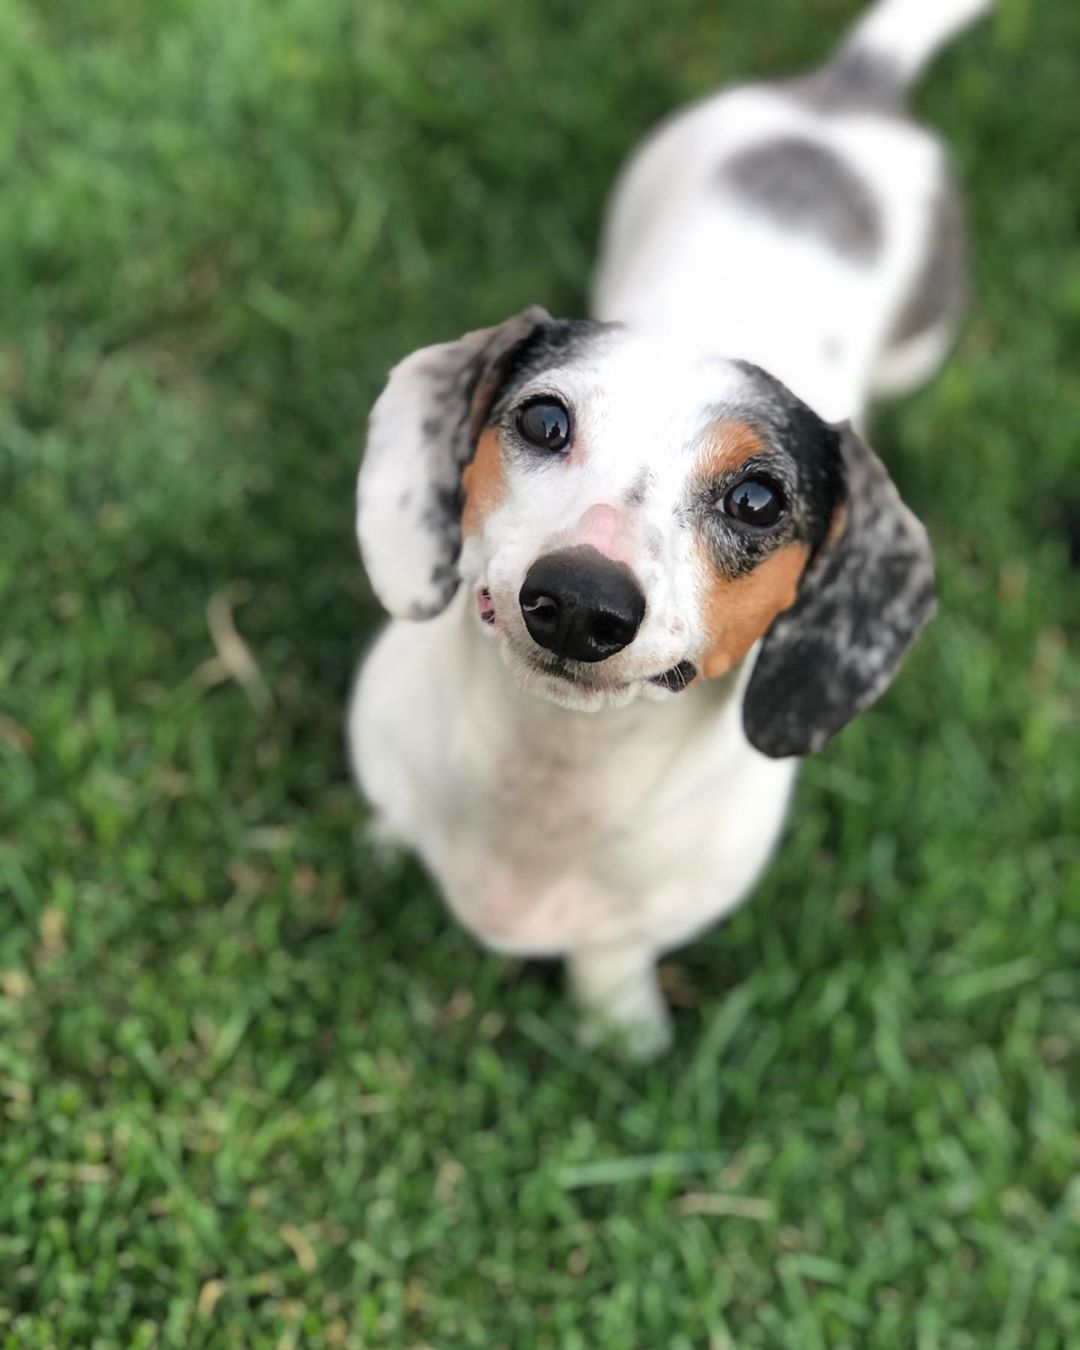 Dachshund Products Apparel And Gifts Piebald Dachshund Training Your Dog Weenie Dogs